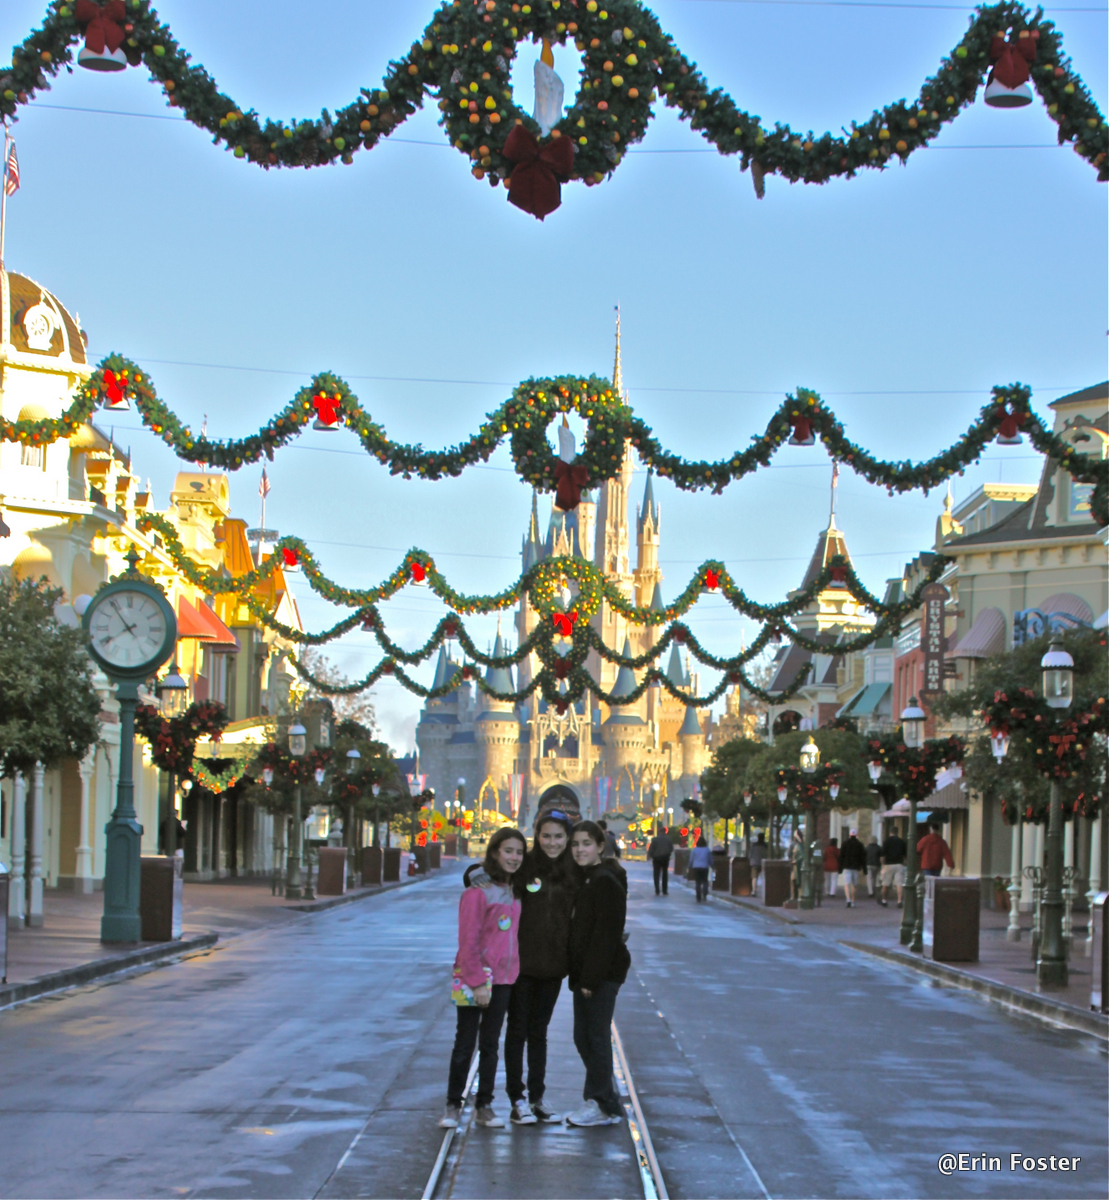 Spending Christmas At Walt Disney World? Things To Think